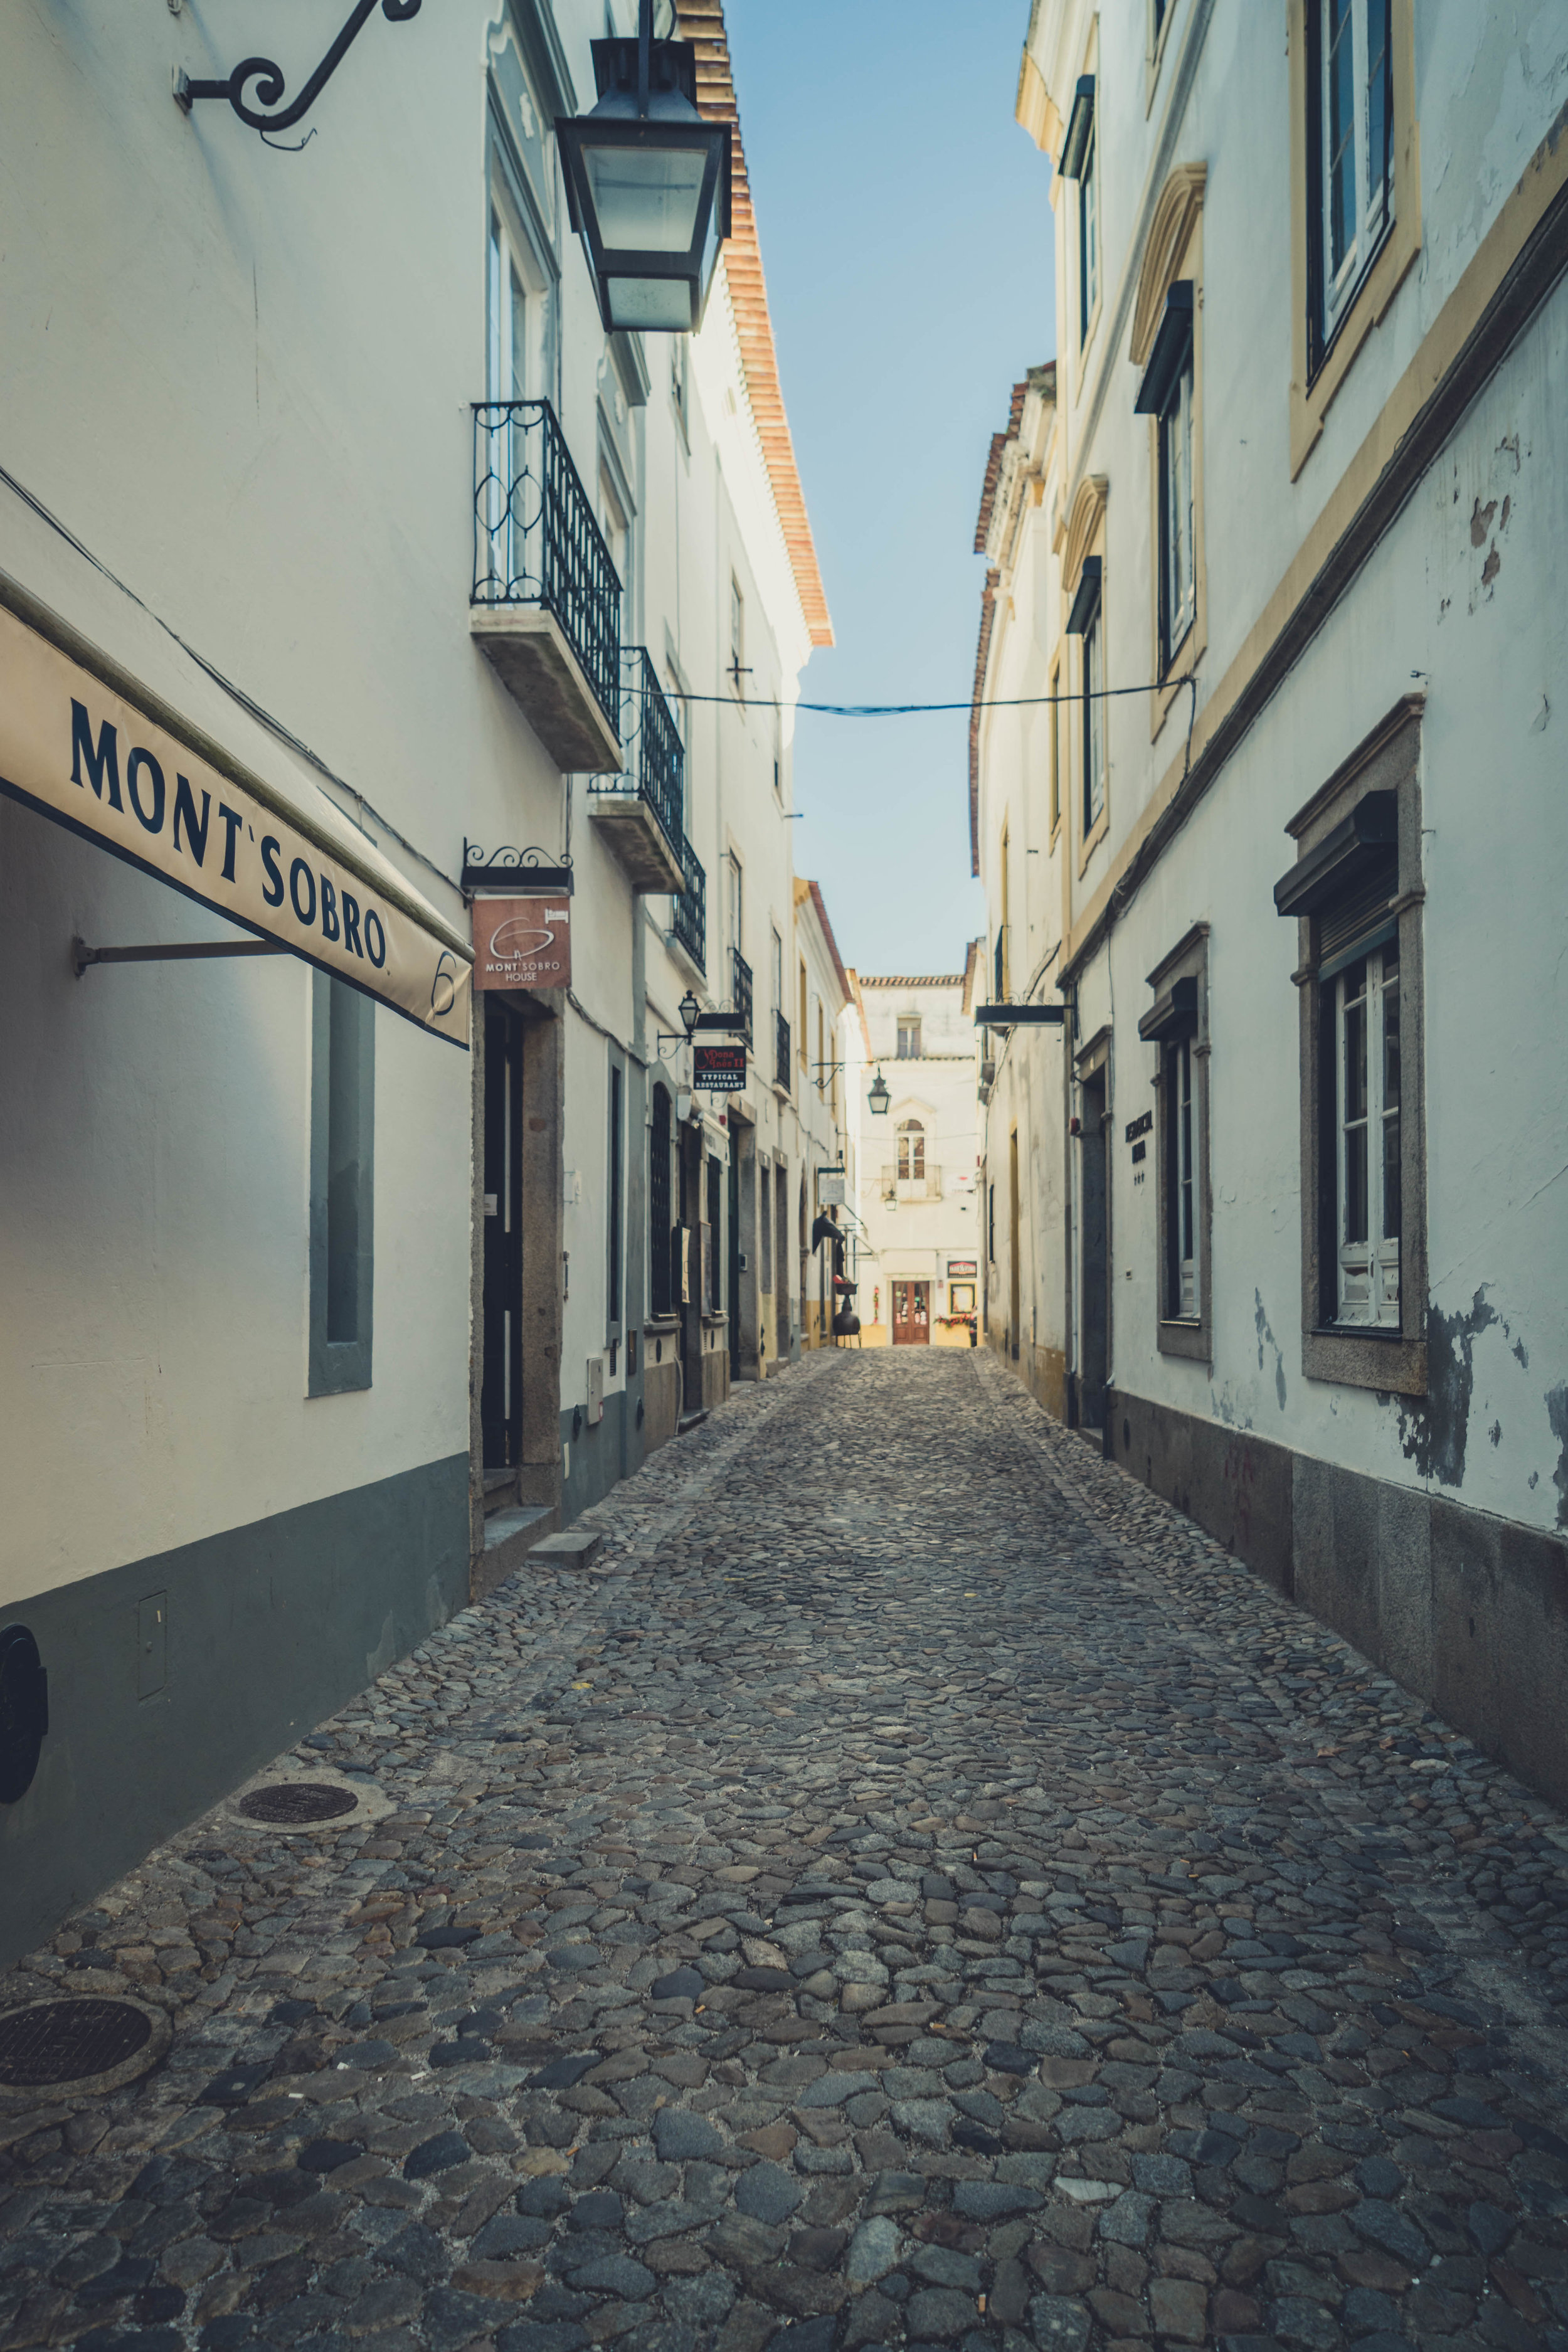 Evora. Roman Ruins. Portugal. Alentejo. Piliers. Roman city. ancient roman town. Blue sky. travel. adventure. history. historical. wine. architecture. side street.jpg